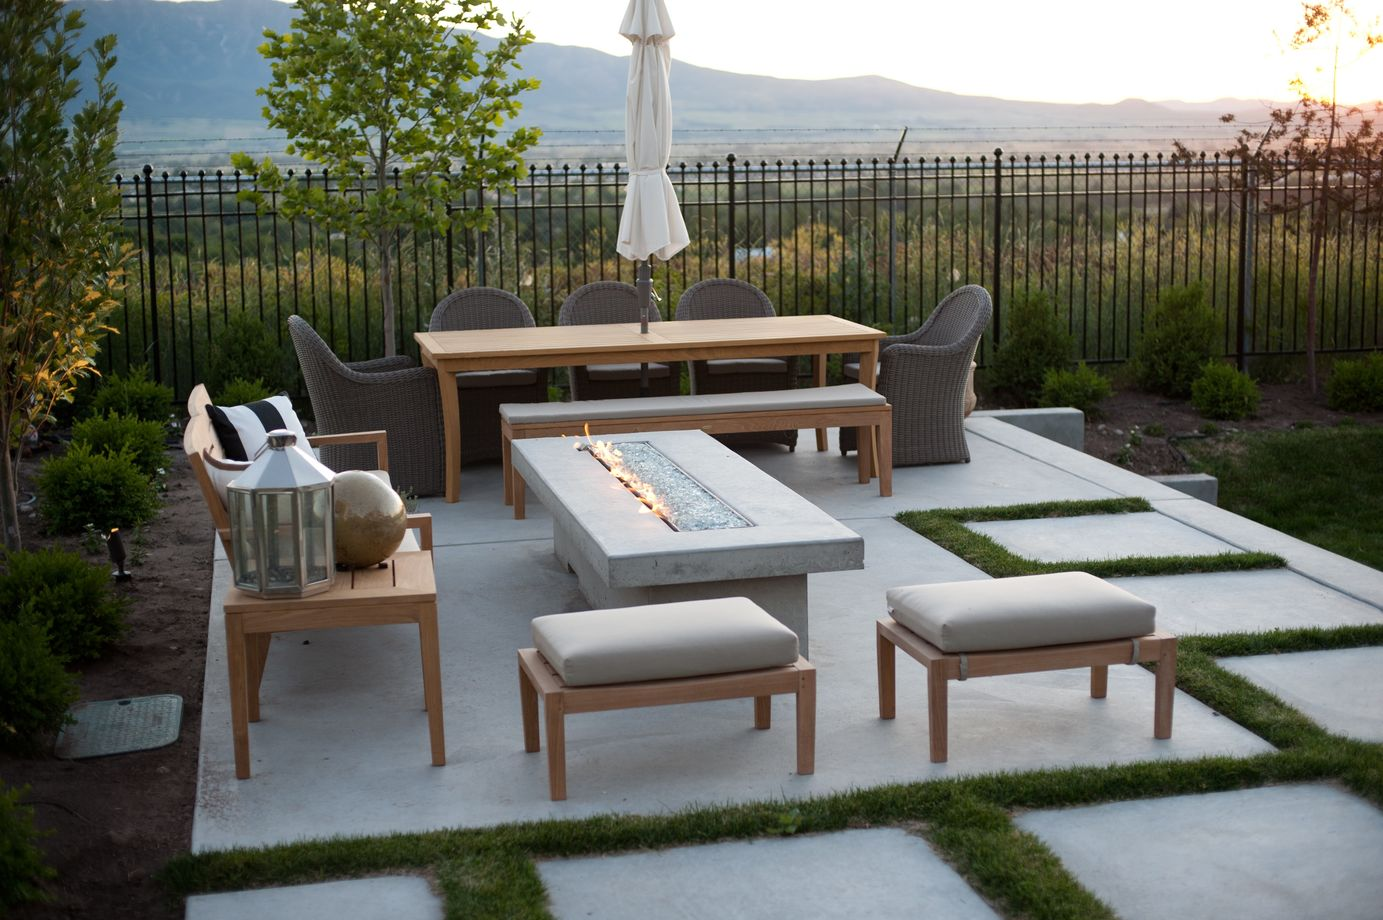 Outside Living Ideas outdoor living: 8 ideas to get the most out of your space - porch